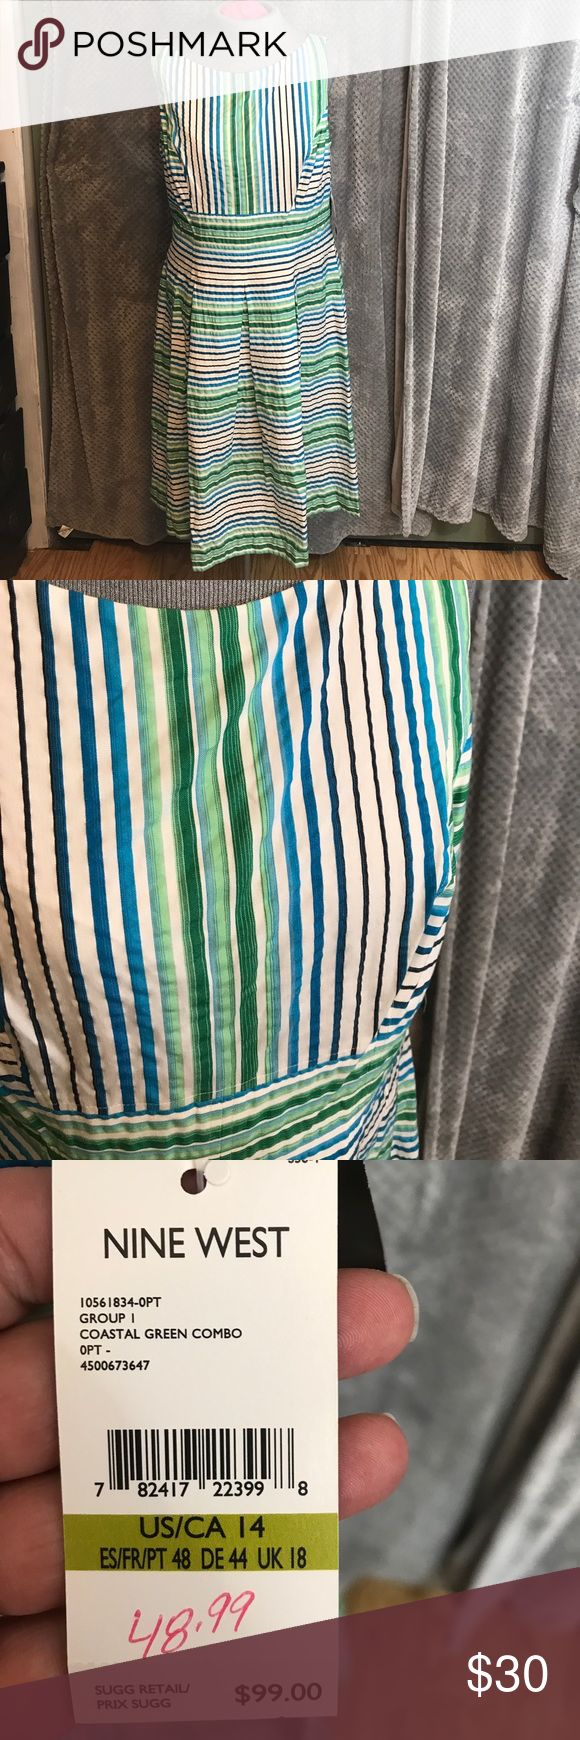 "NWT Nine West stripe pleated tank dress This dress is adorable. The fabric is sort of wrinkly puckered feeling. I say that because it's not this smooth silky stuff. Bust is 19.5"". Waist 17"". Length 41"". Large box pleats on skirt part. Nine West Dresses Midi"